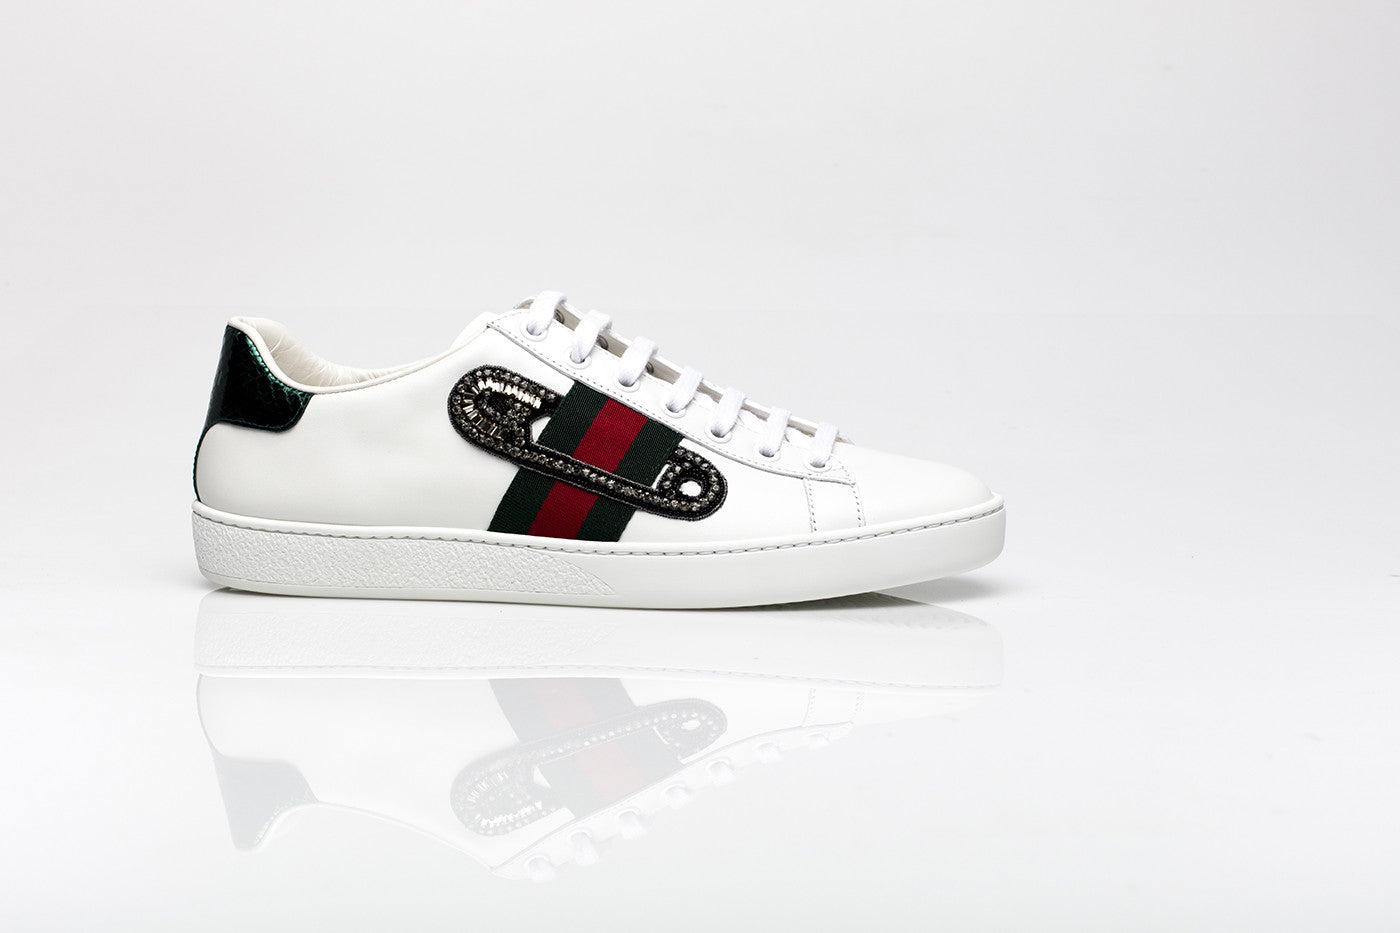 18859846cd21 Gucci Womens Ace Embellished Sneakers